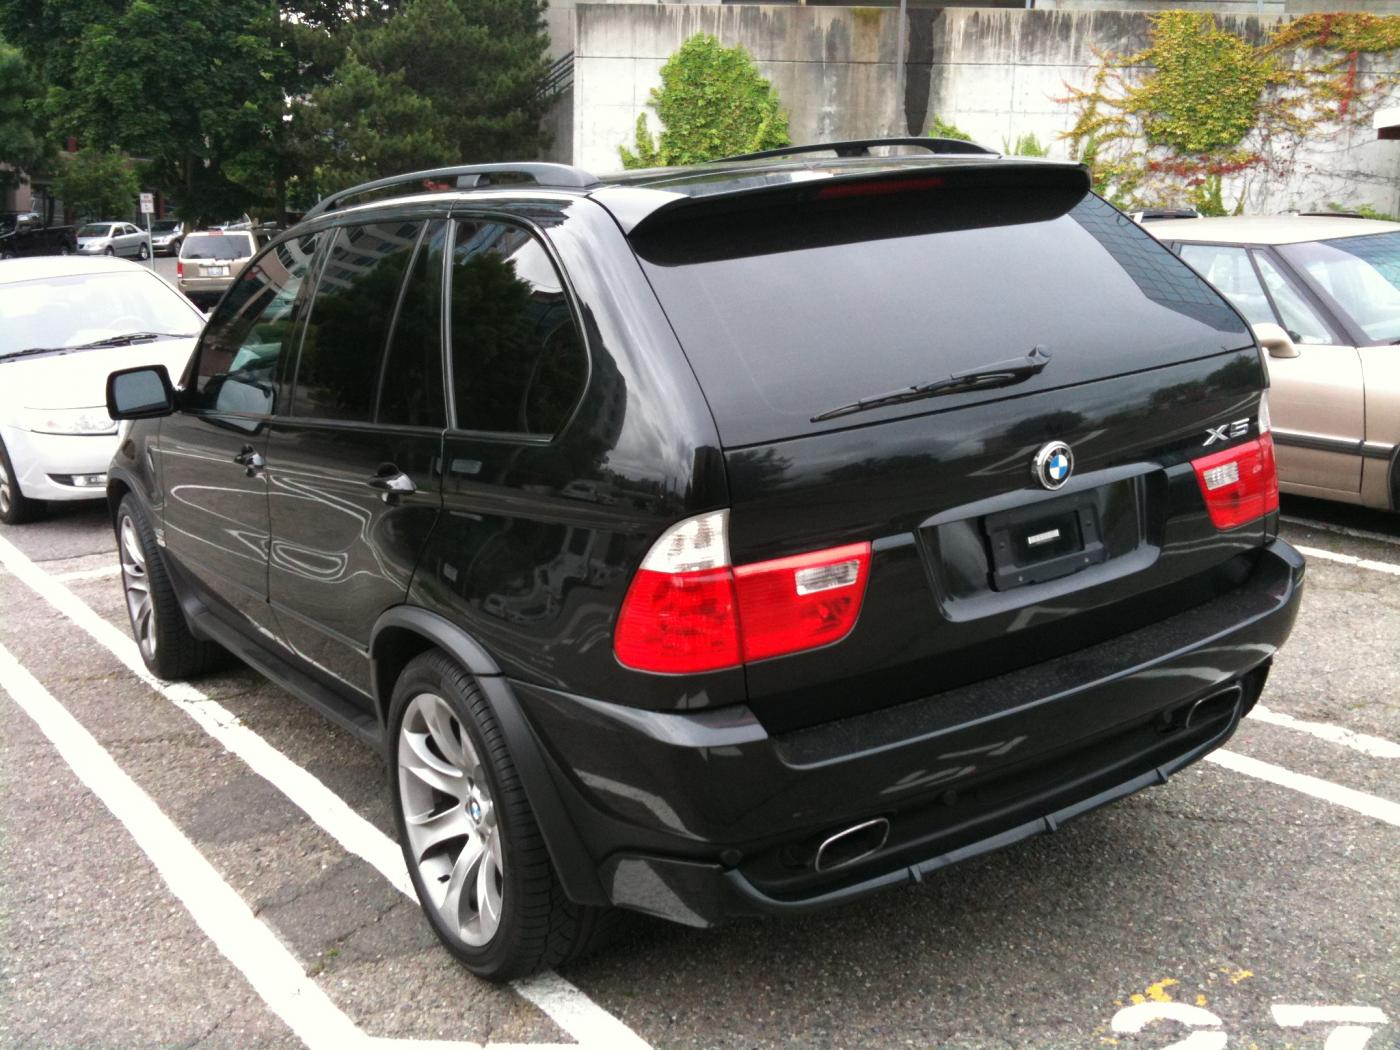 My New (to me) BMW X5 4.8is - Xoutpost.com